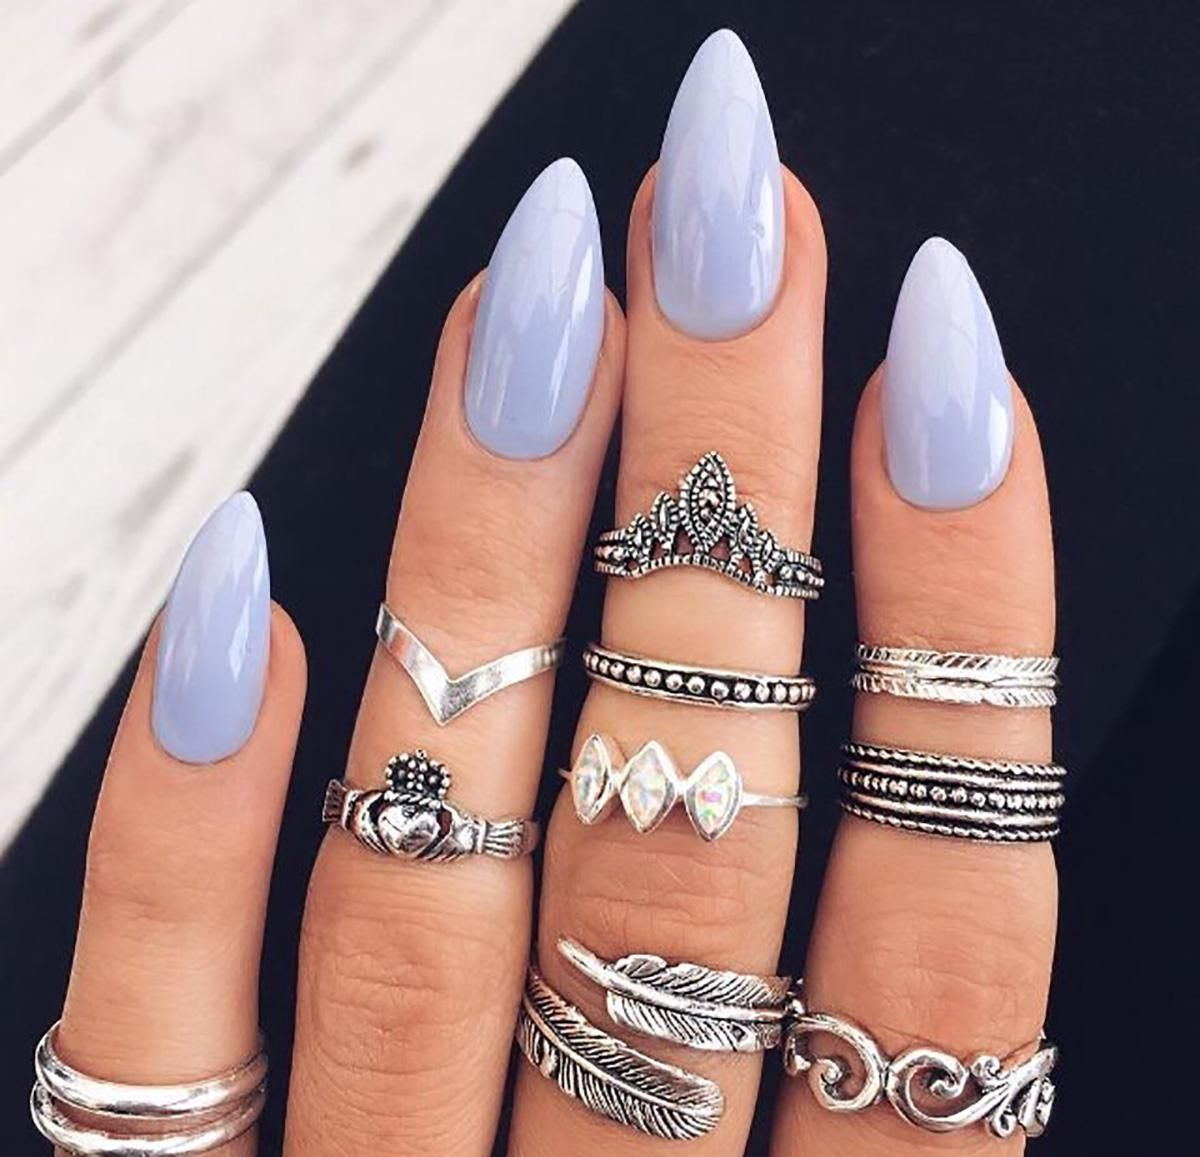 20 Worth Trying Long Stiletto Nails Designs | Hollywood actresses ...